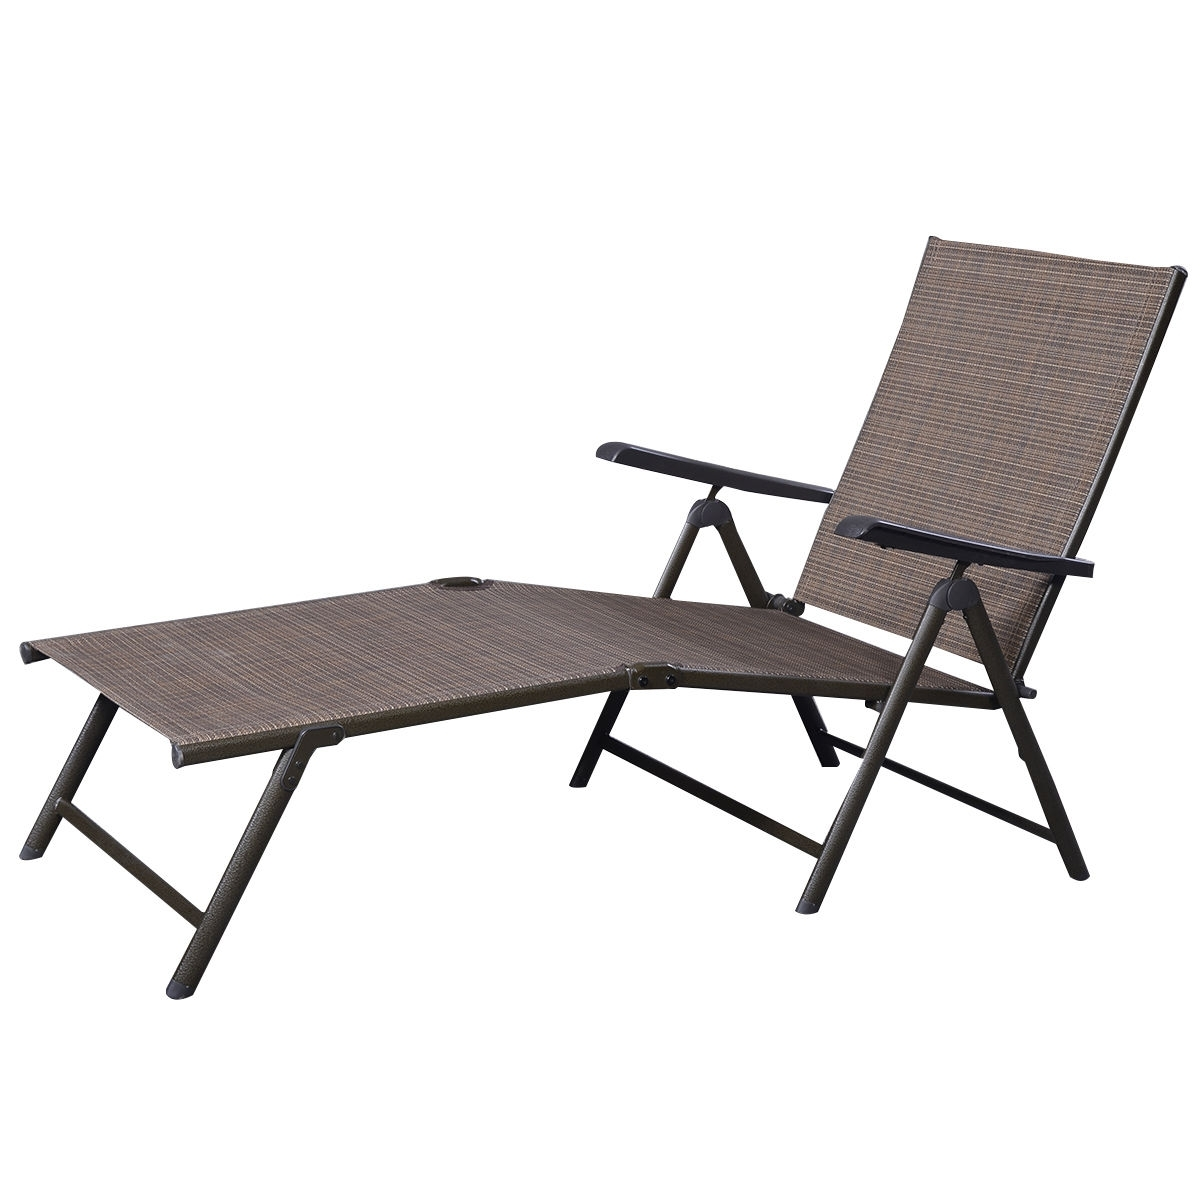 Well Known Outdoor Ikea Chaise Lounge Chairs Inside Outdoor : Chaise Lounge Outdoor Ikea Lowes Patio Furniture (View 14 of 15)